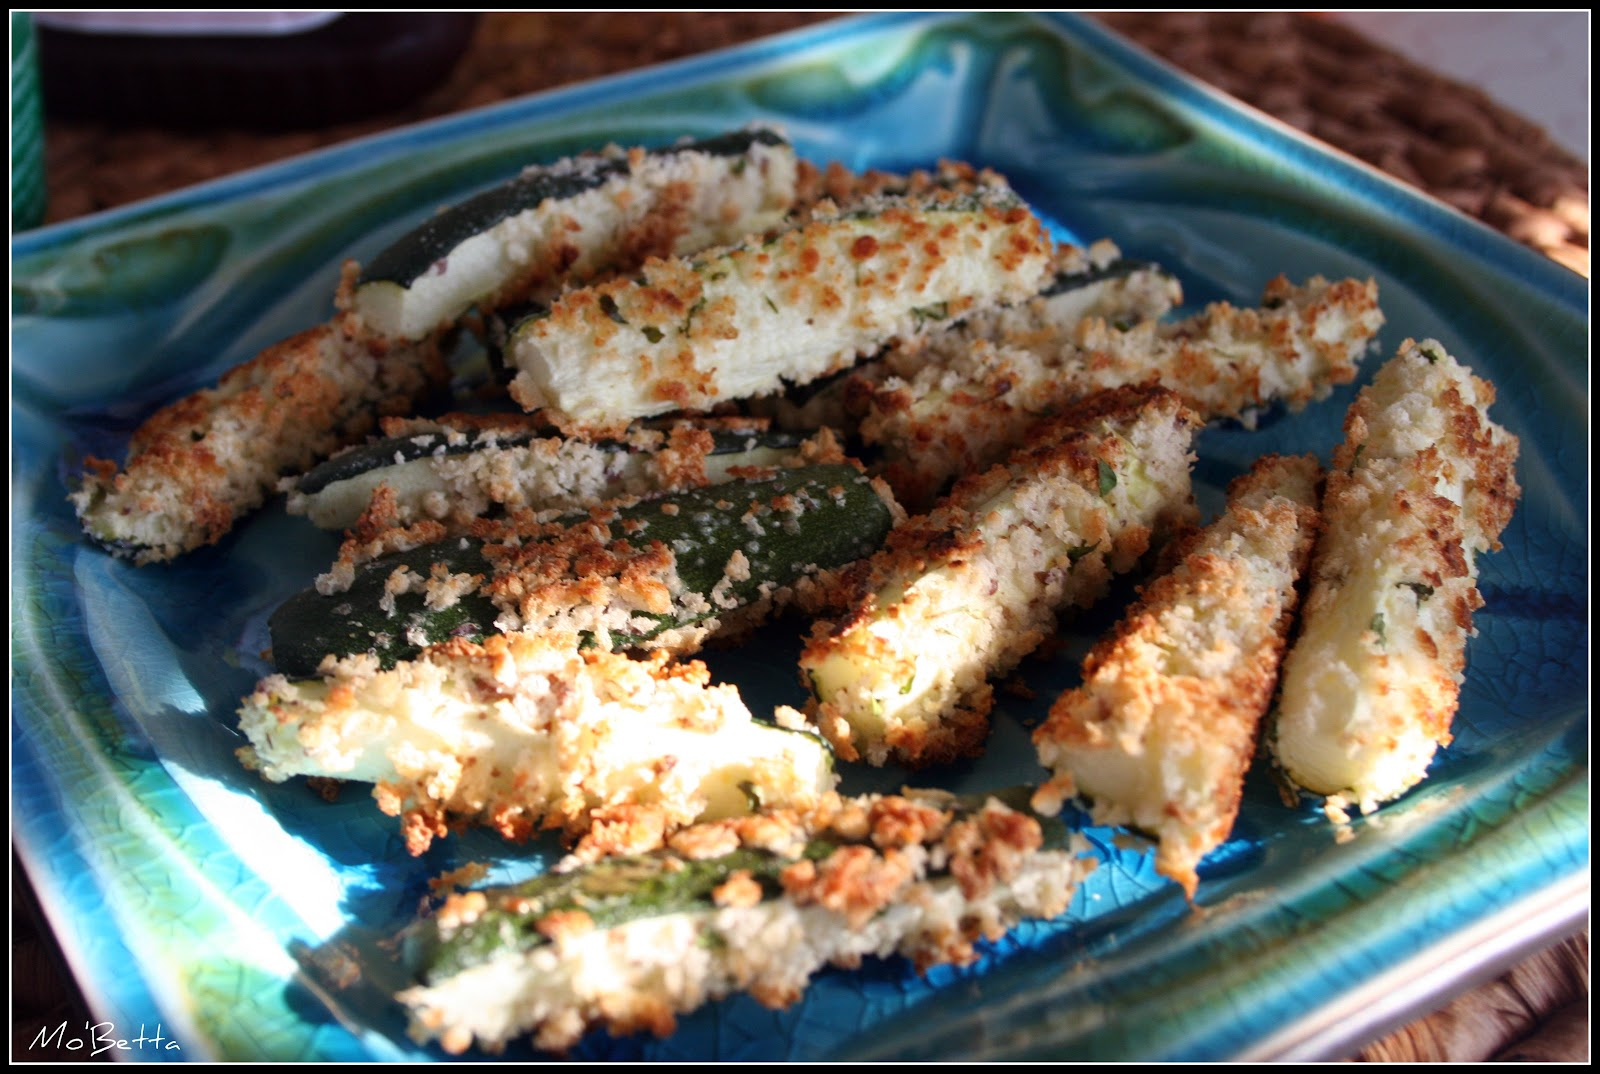 Makin' it Mo' Betta: Oven baked zucchini fries